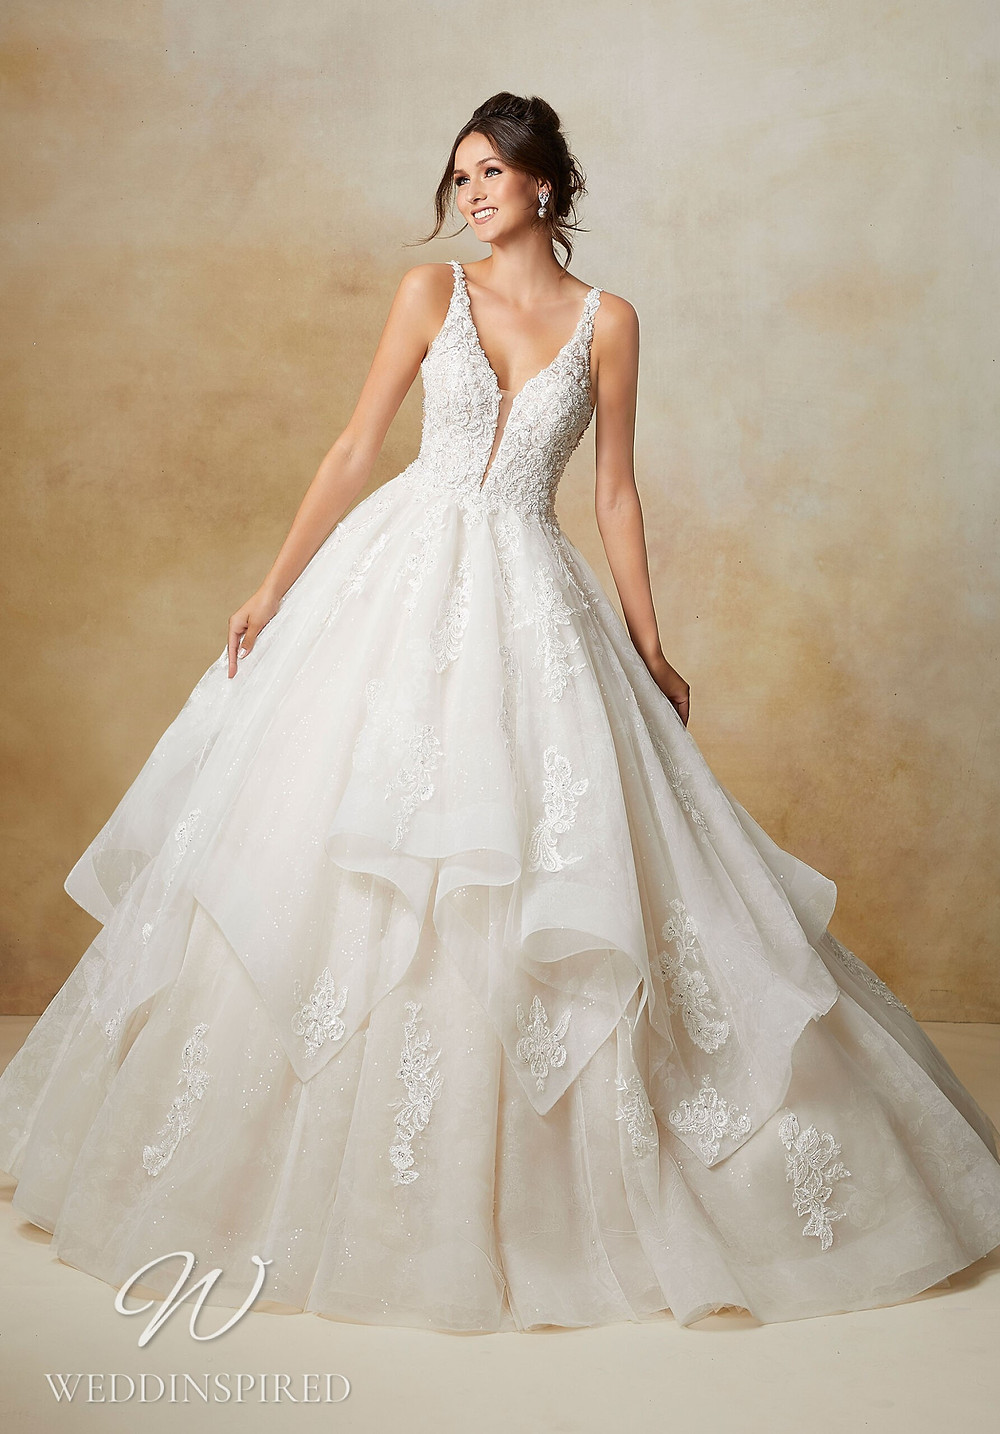 A Madeline Gardner lace ball gown wedding dress with a ruffle skirt and straps